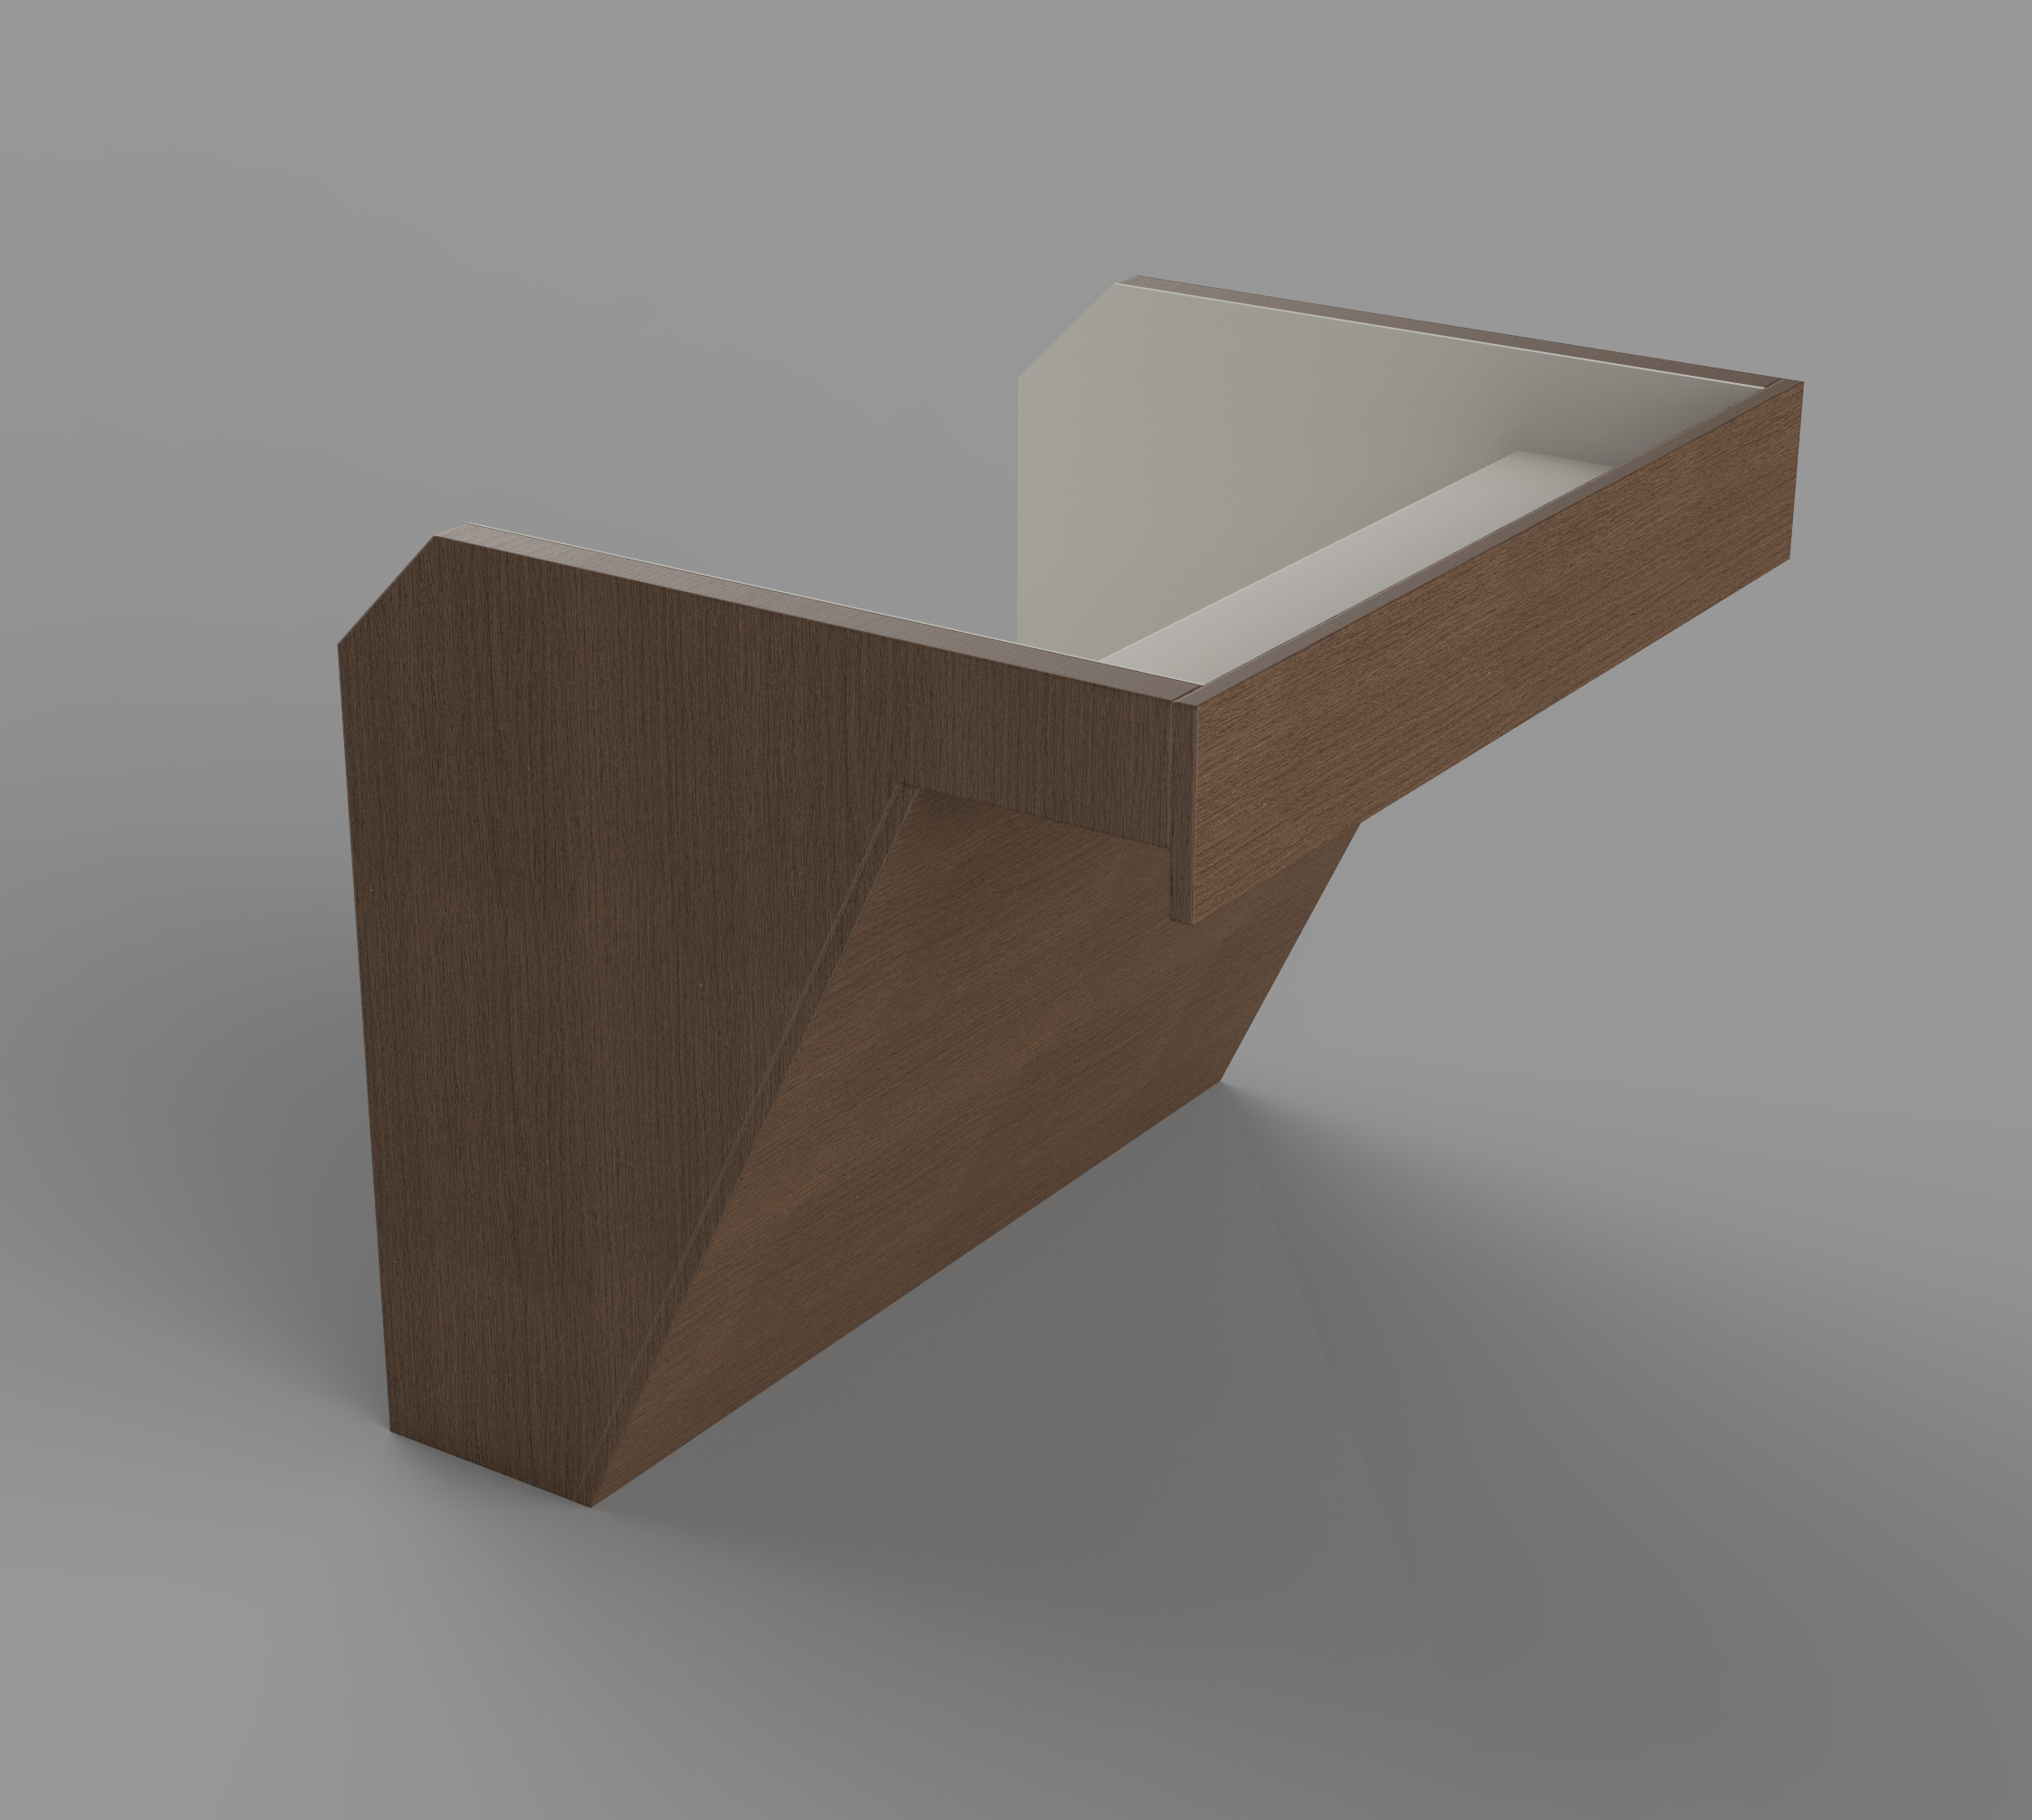 Cabinet that will be use for a sink base